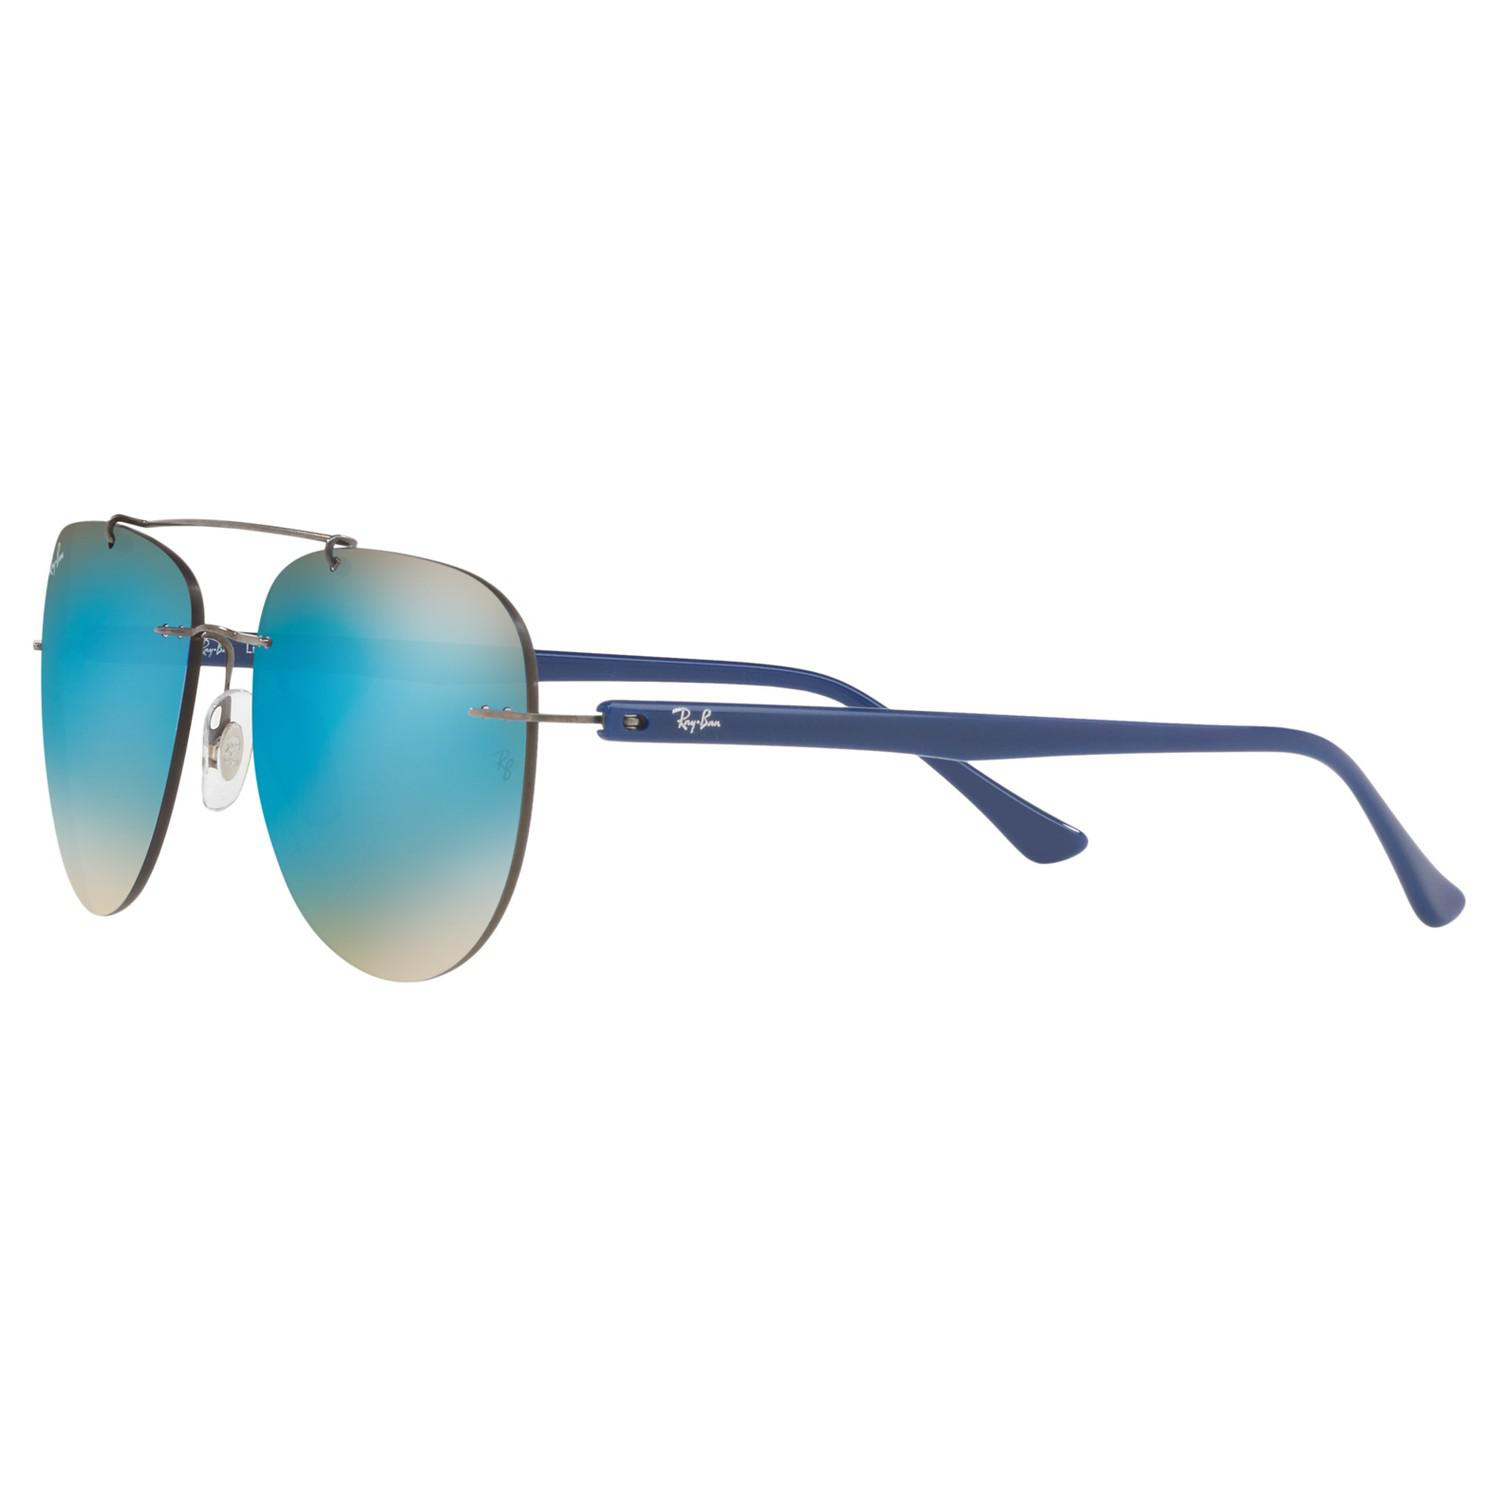 Ray-Ban Rb8059 Mirrored Aviator Sunglasses in Blue/Silver (Blue) for Men